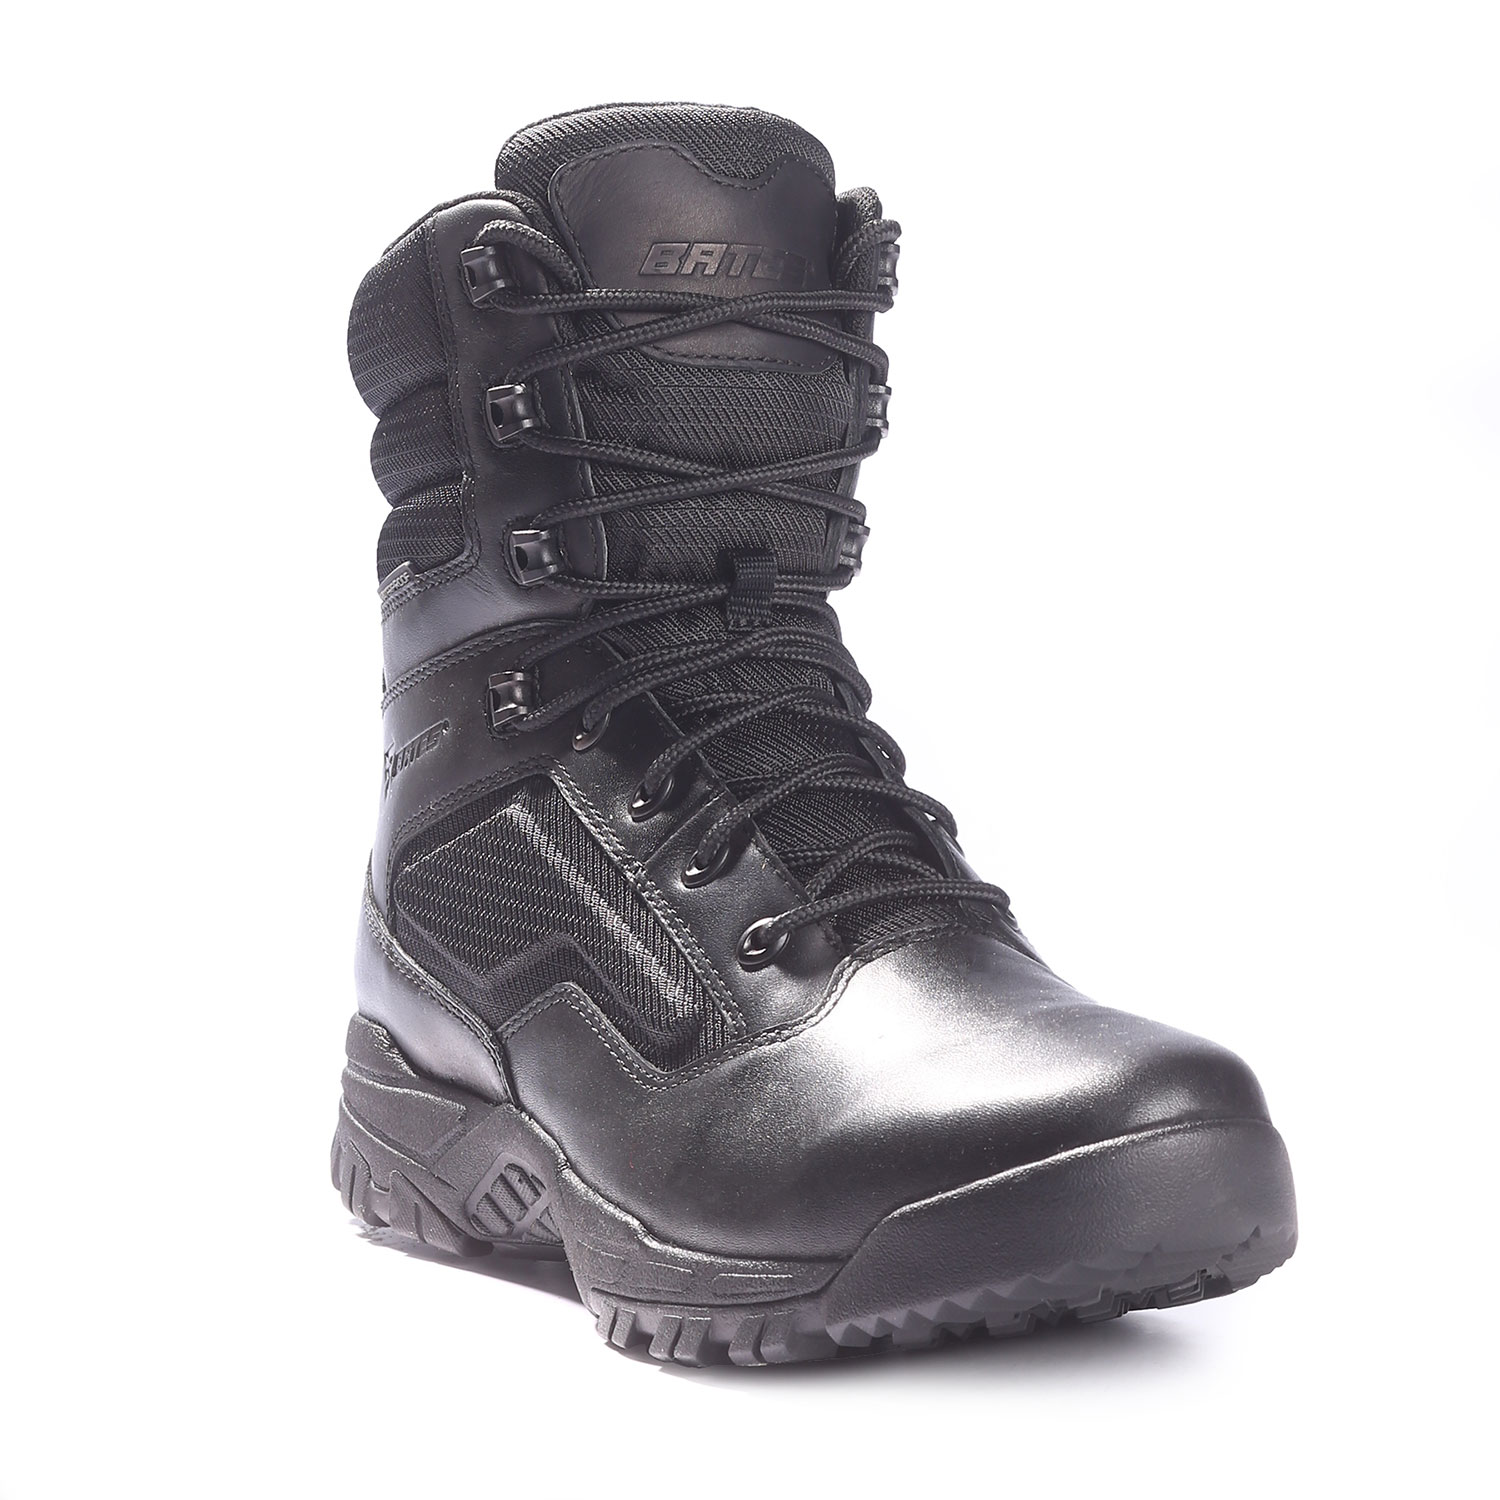 Bates Siege Waterproof Side Zip Boots